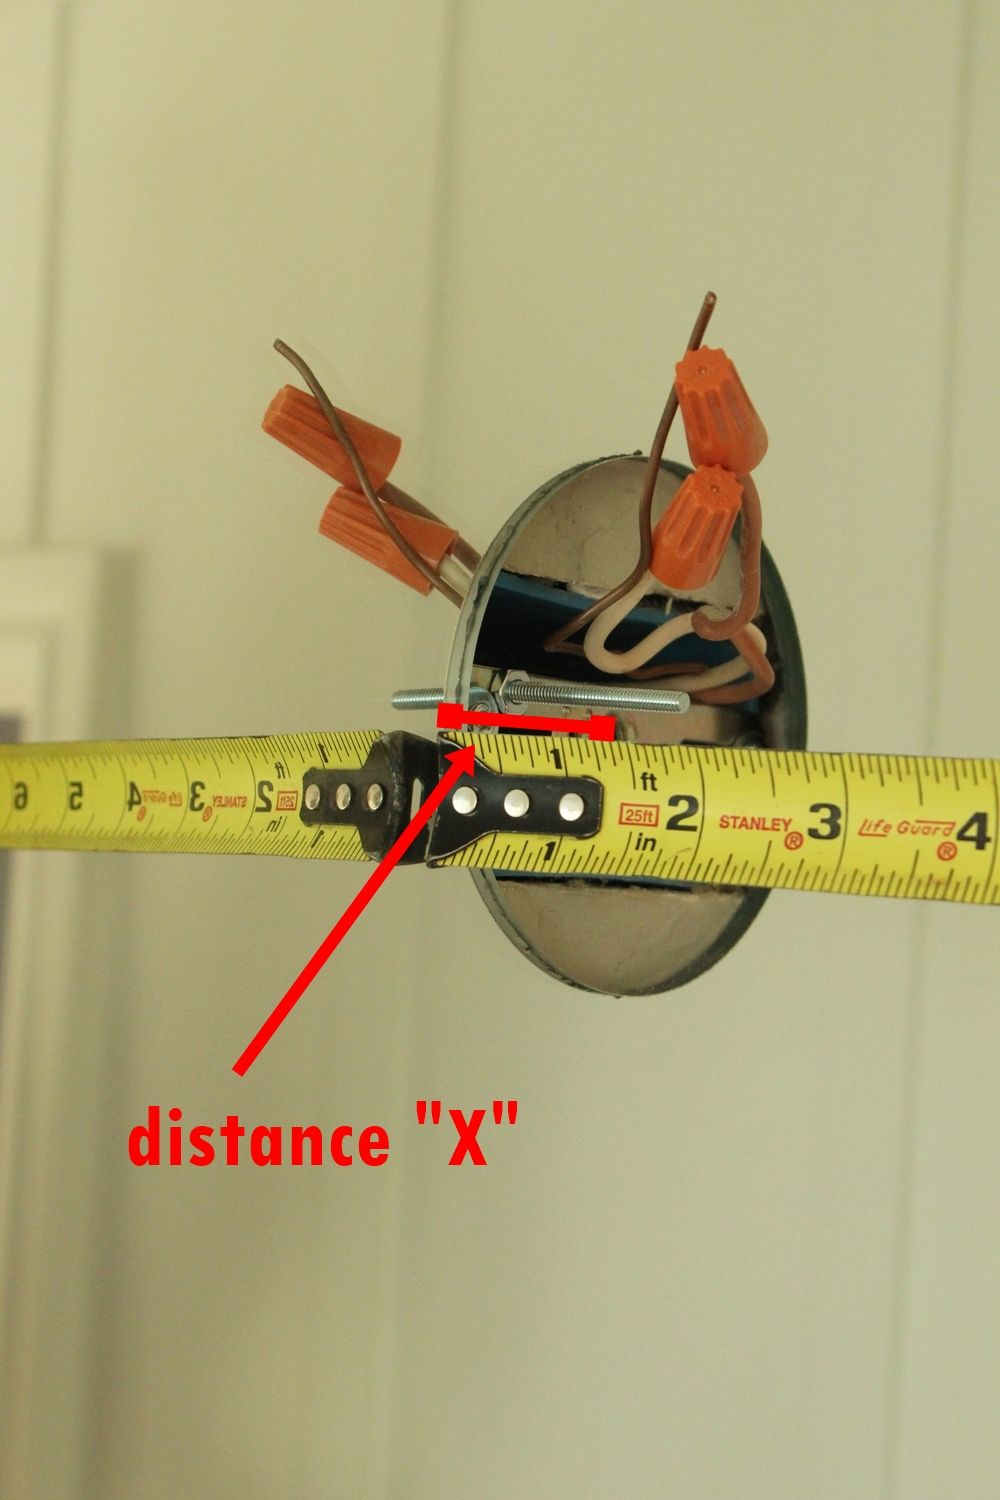 Now measure distance X away